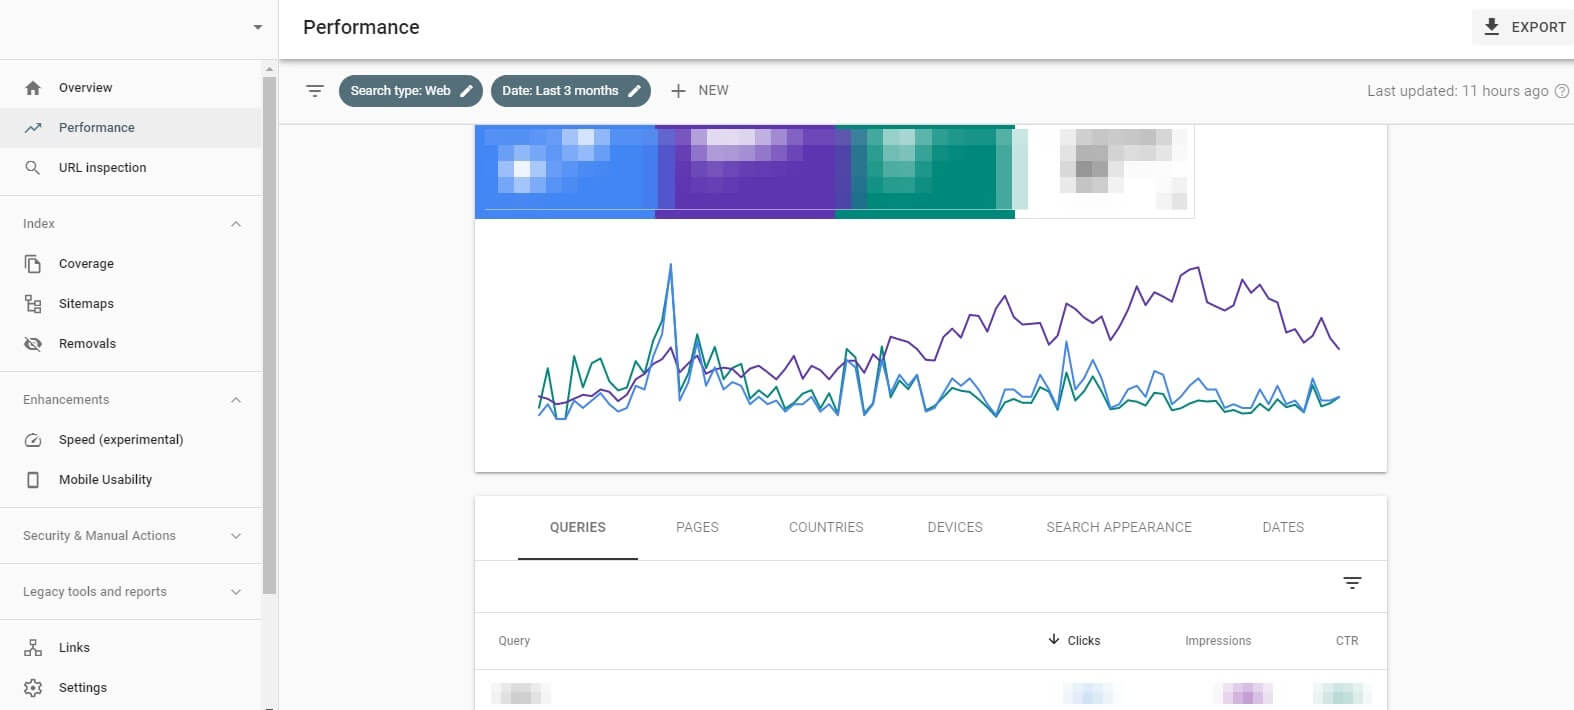 Screenshot showing Performance graph for Average CTR and Position enablement